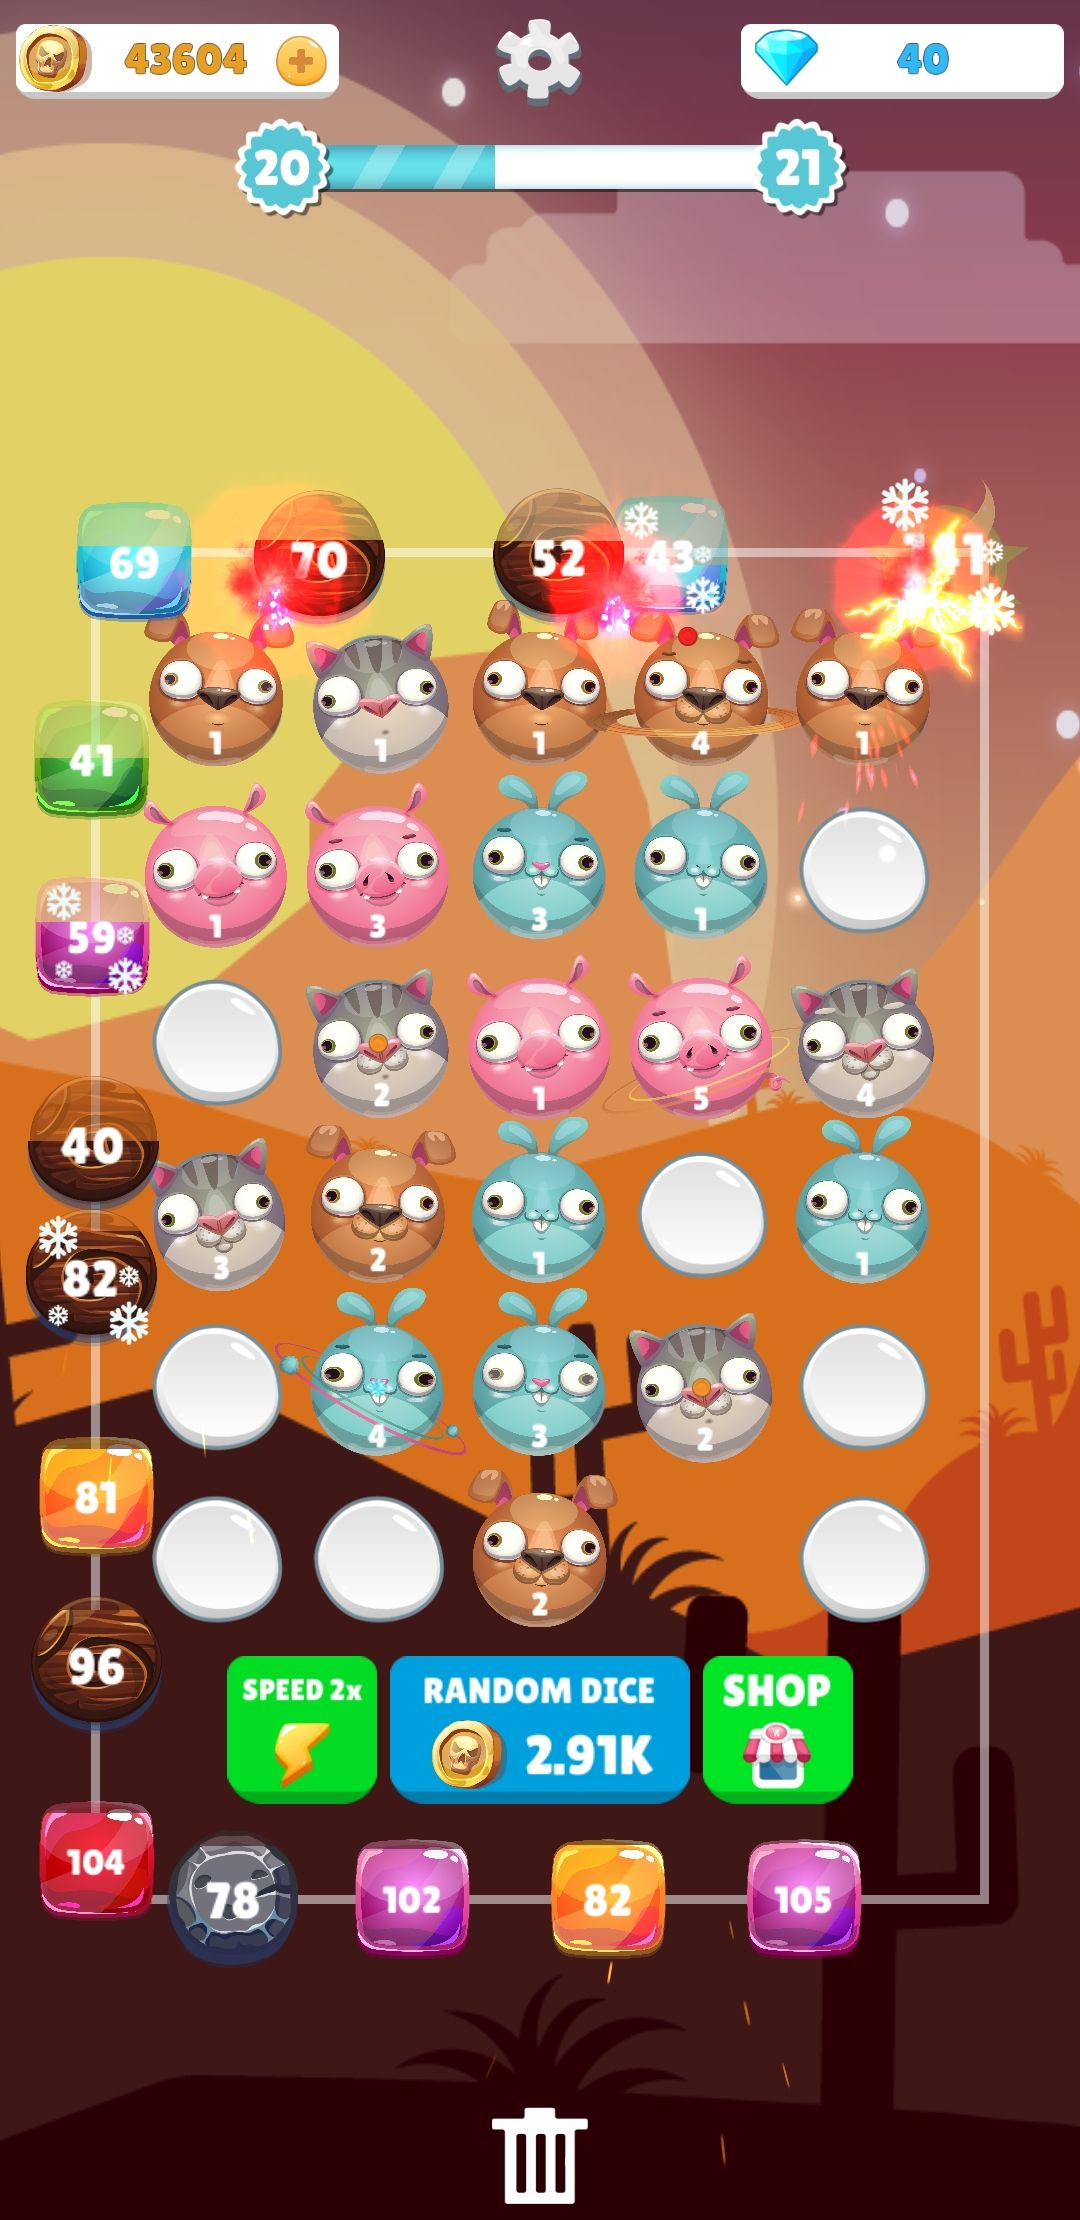 Merge Animals - Tower Defense Unity Project Screenshot 3